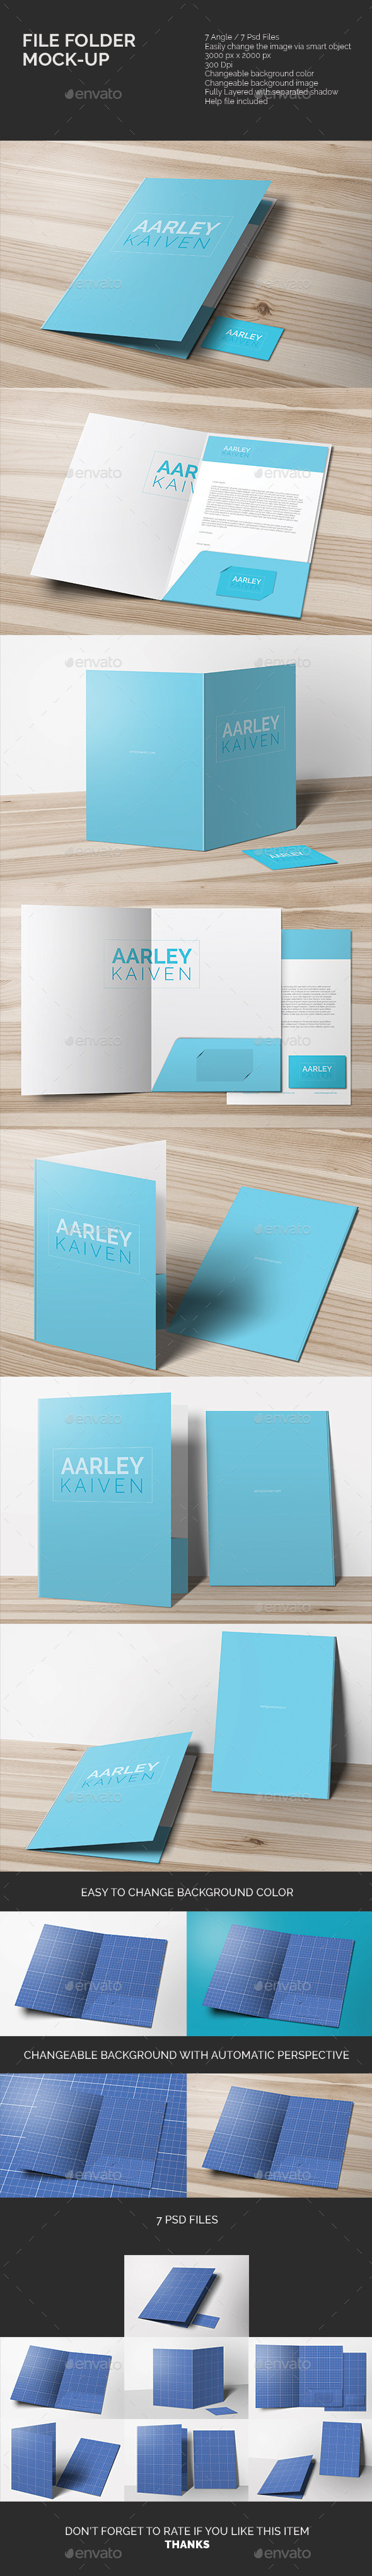 GraphicRiver File Folder Mock-up 10827248